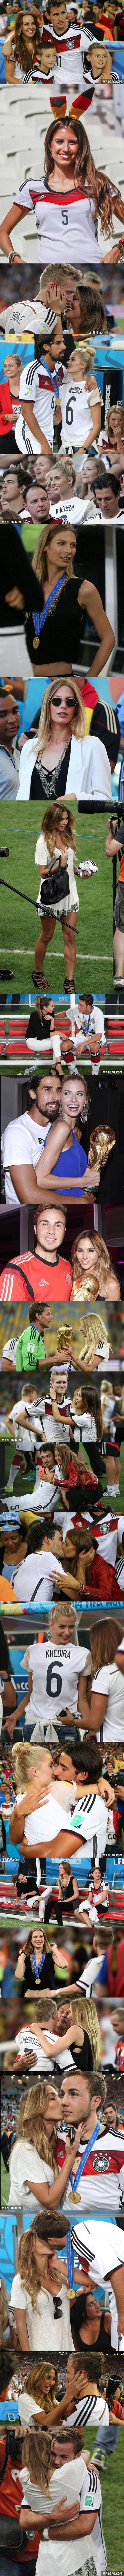 Congrats To Germany… For Having The Hottest Wives and GF's At The World Cup